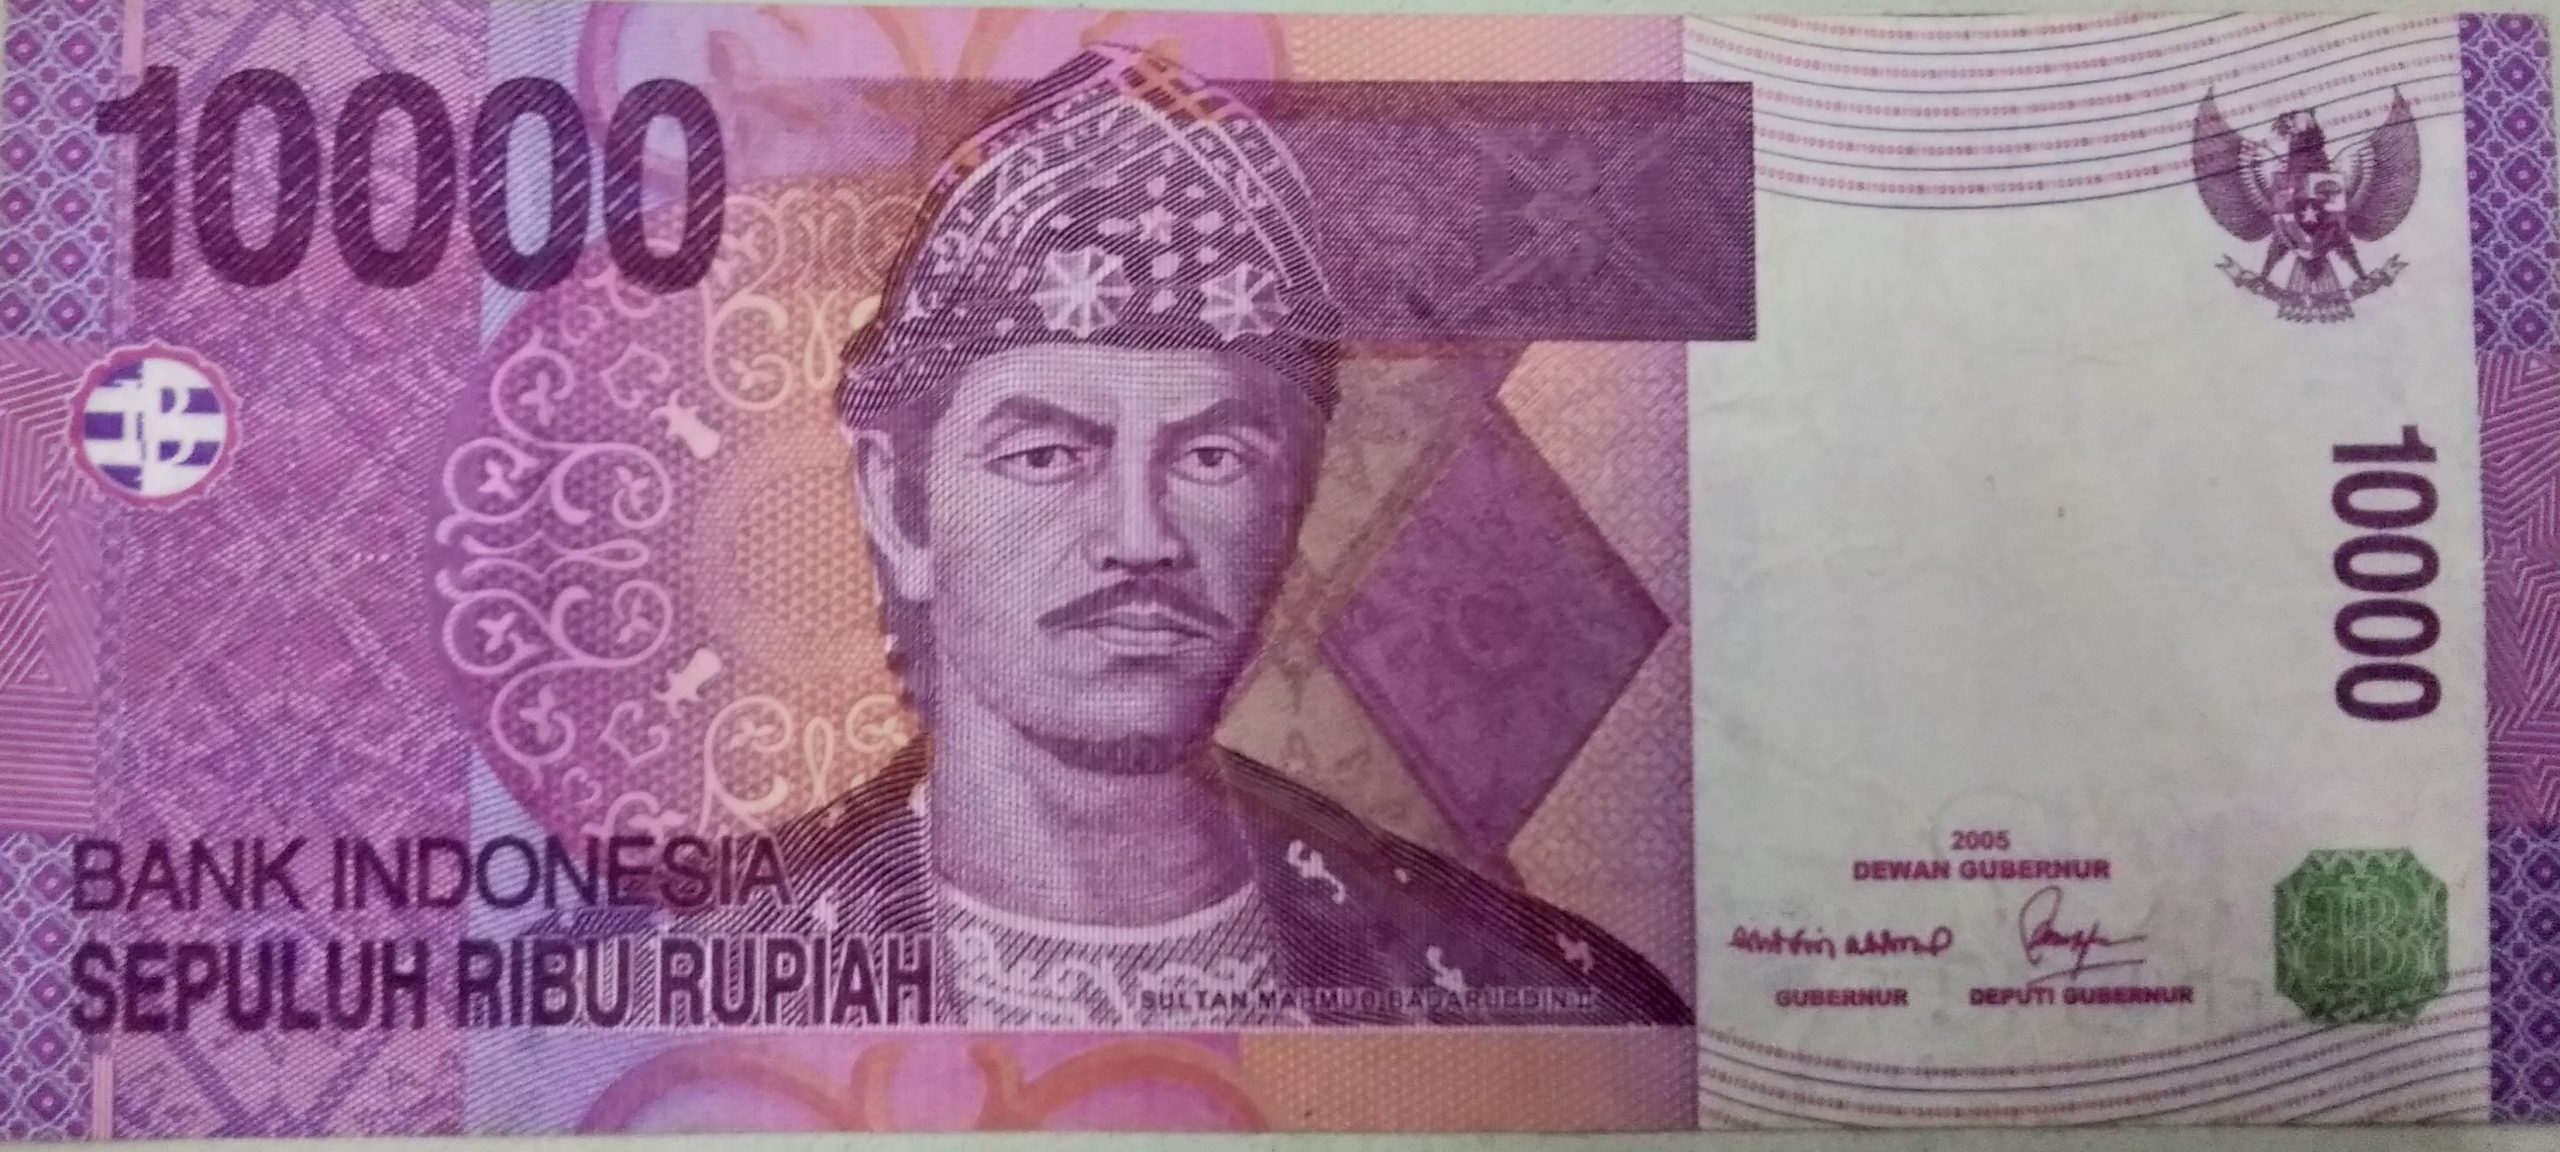 Indonesia 10000 rupiah 2005 banknote for sale